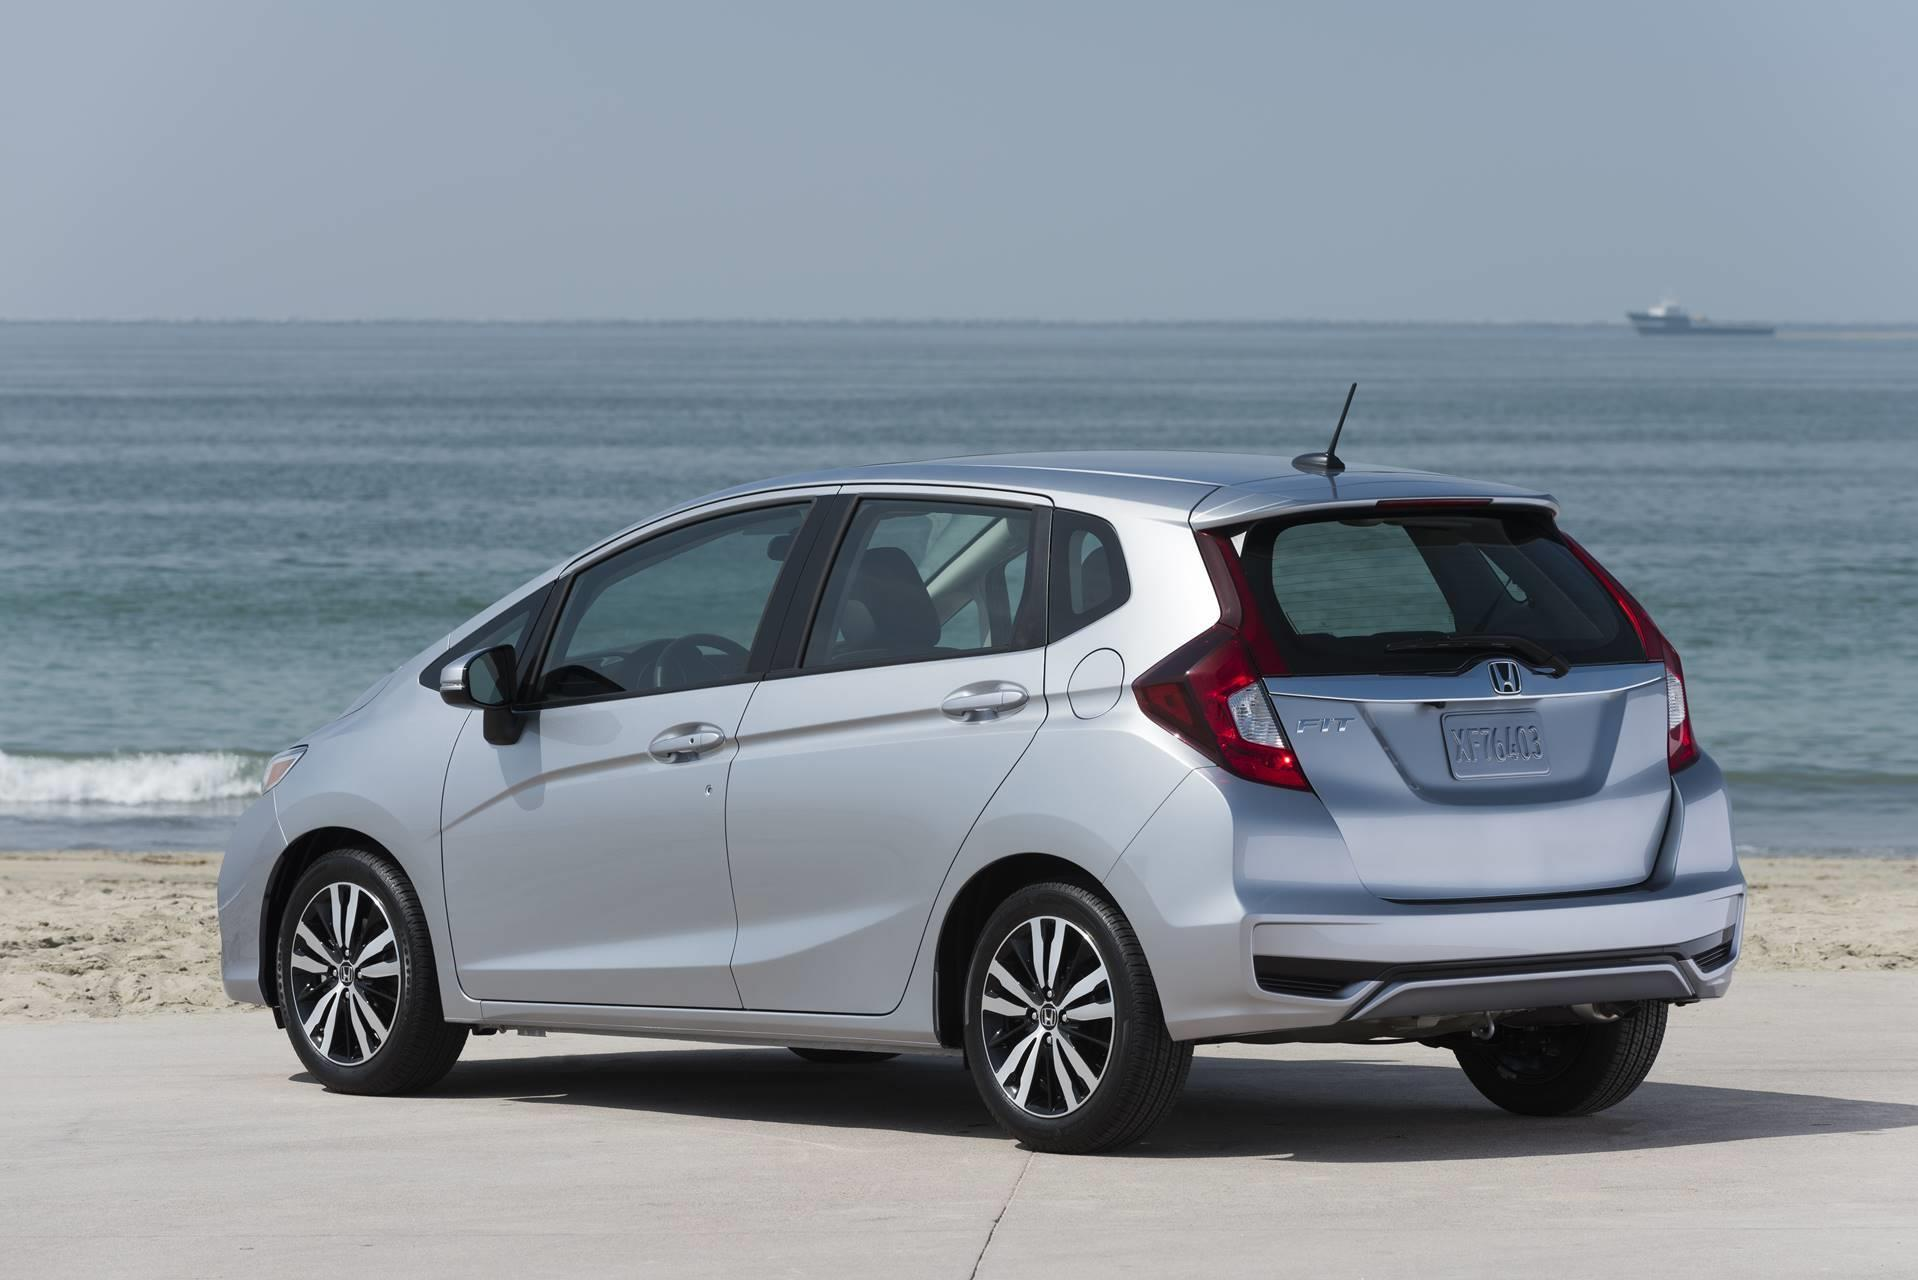 Honda Fit photo